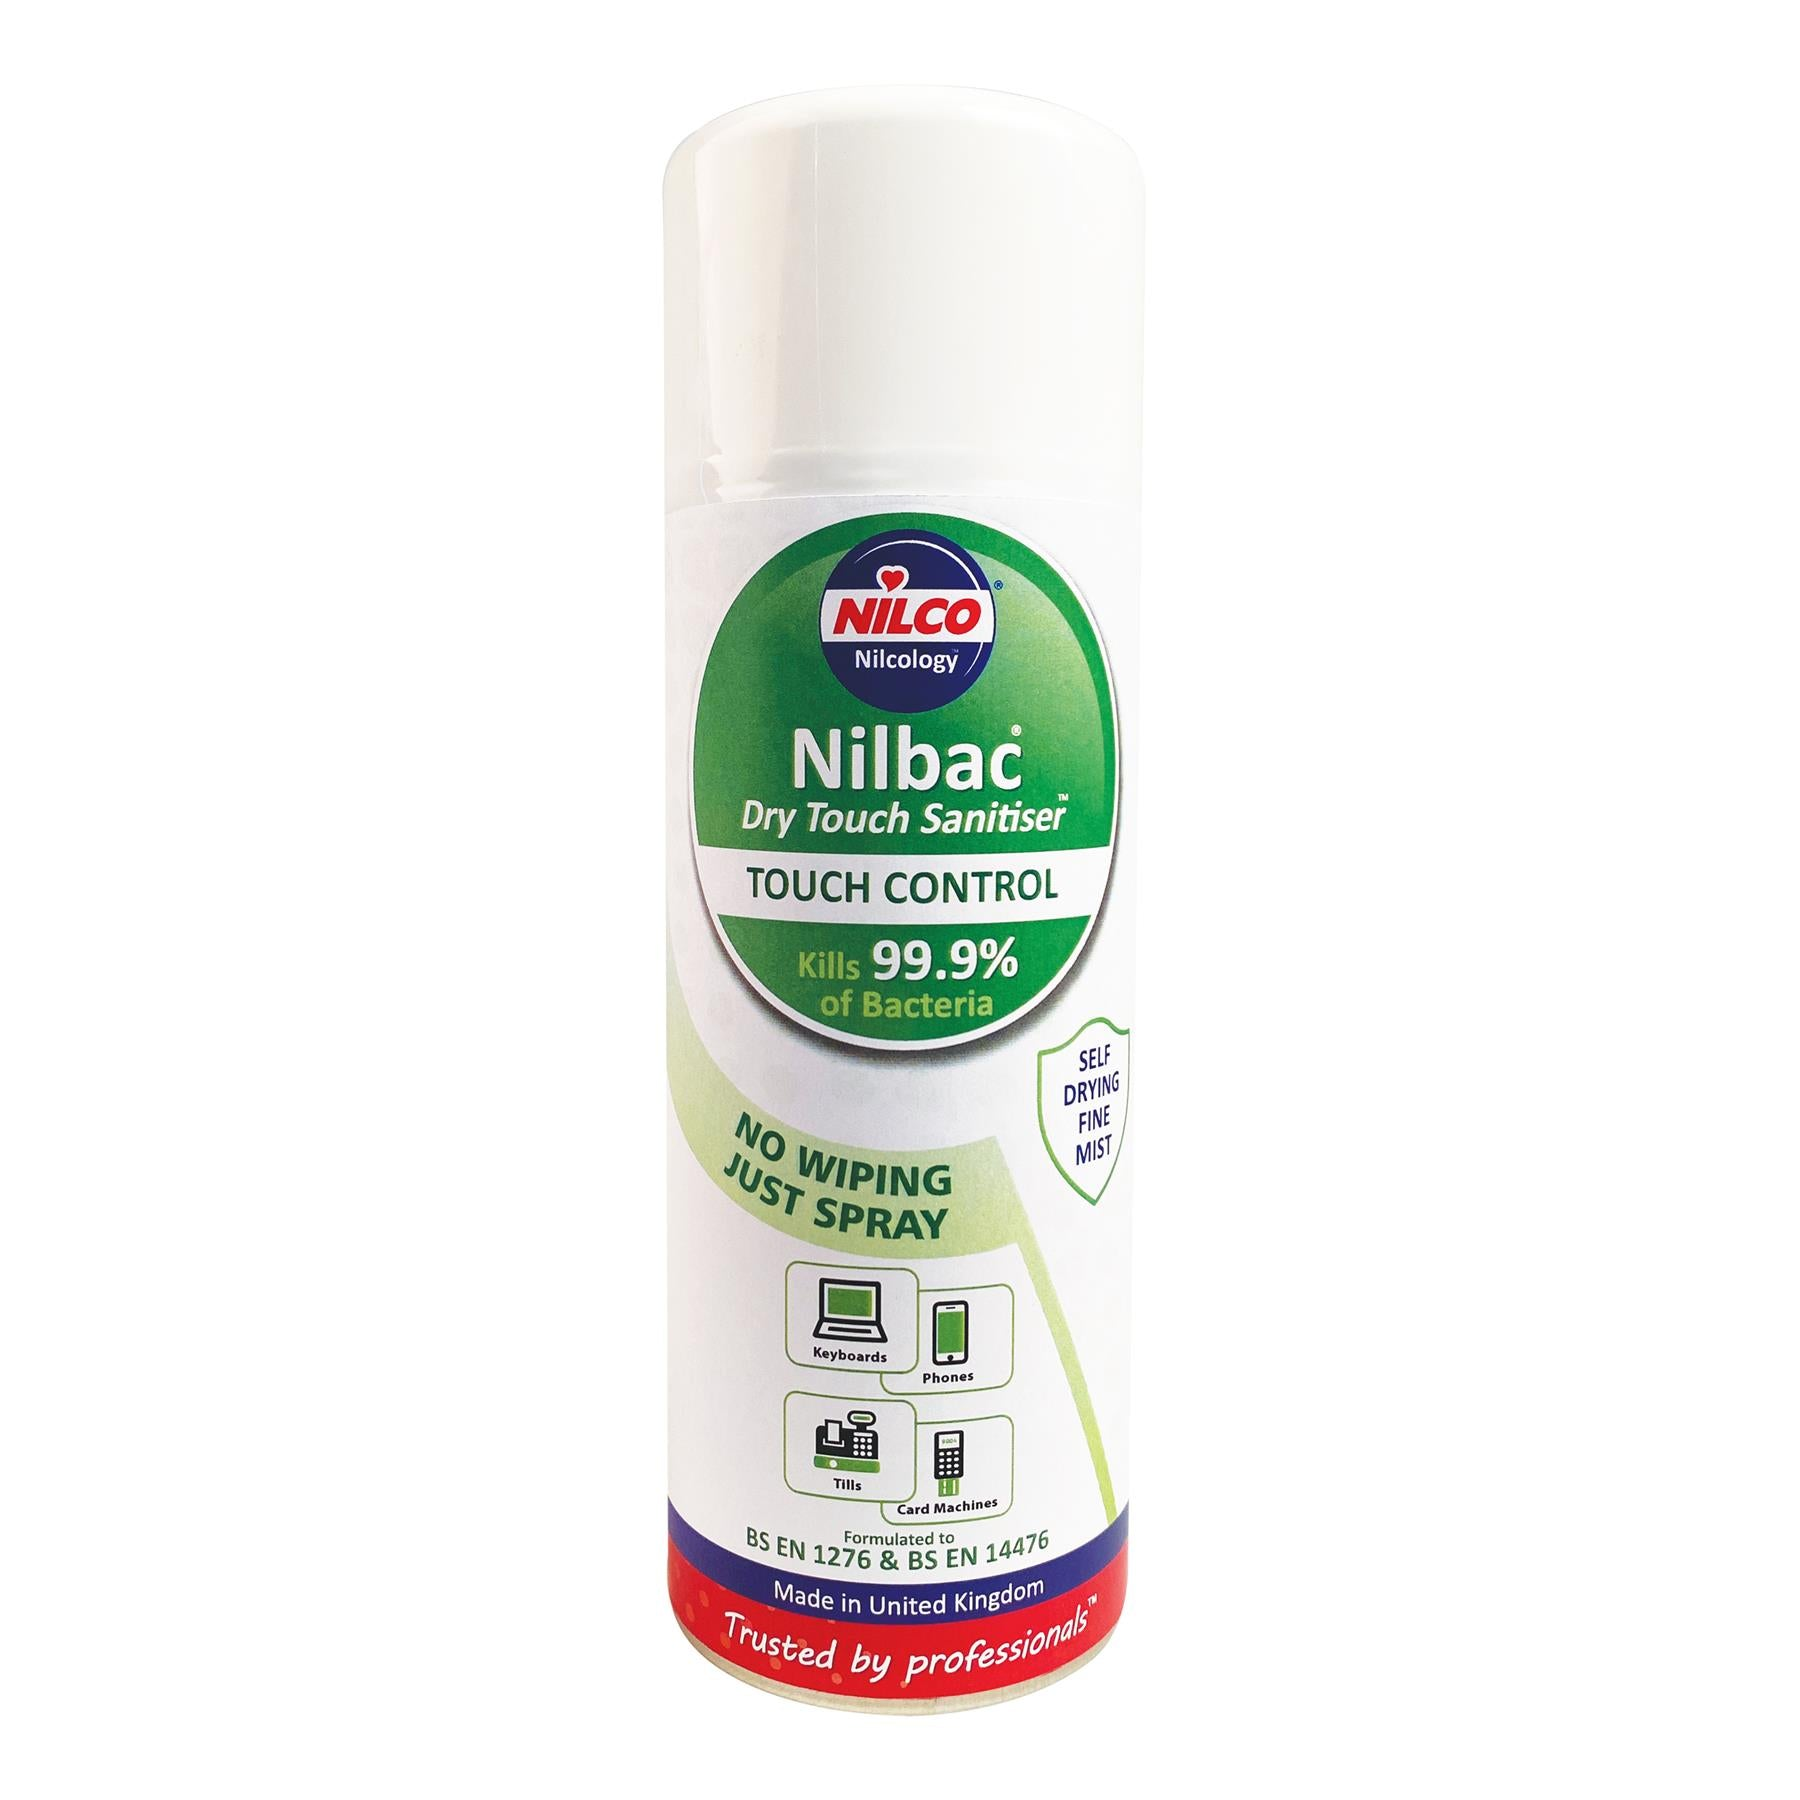 Nilco Dry-Touch Sanitiser Antibacterial Aerosol Spray - 400ml